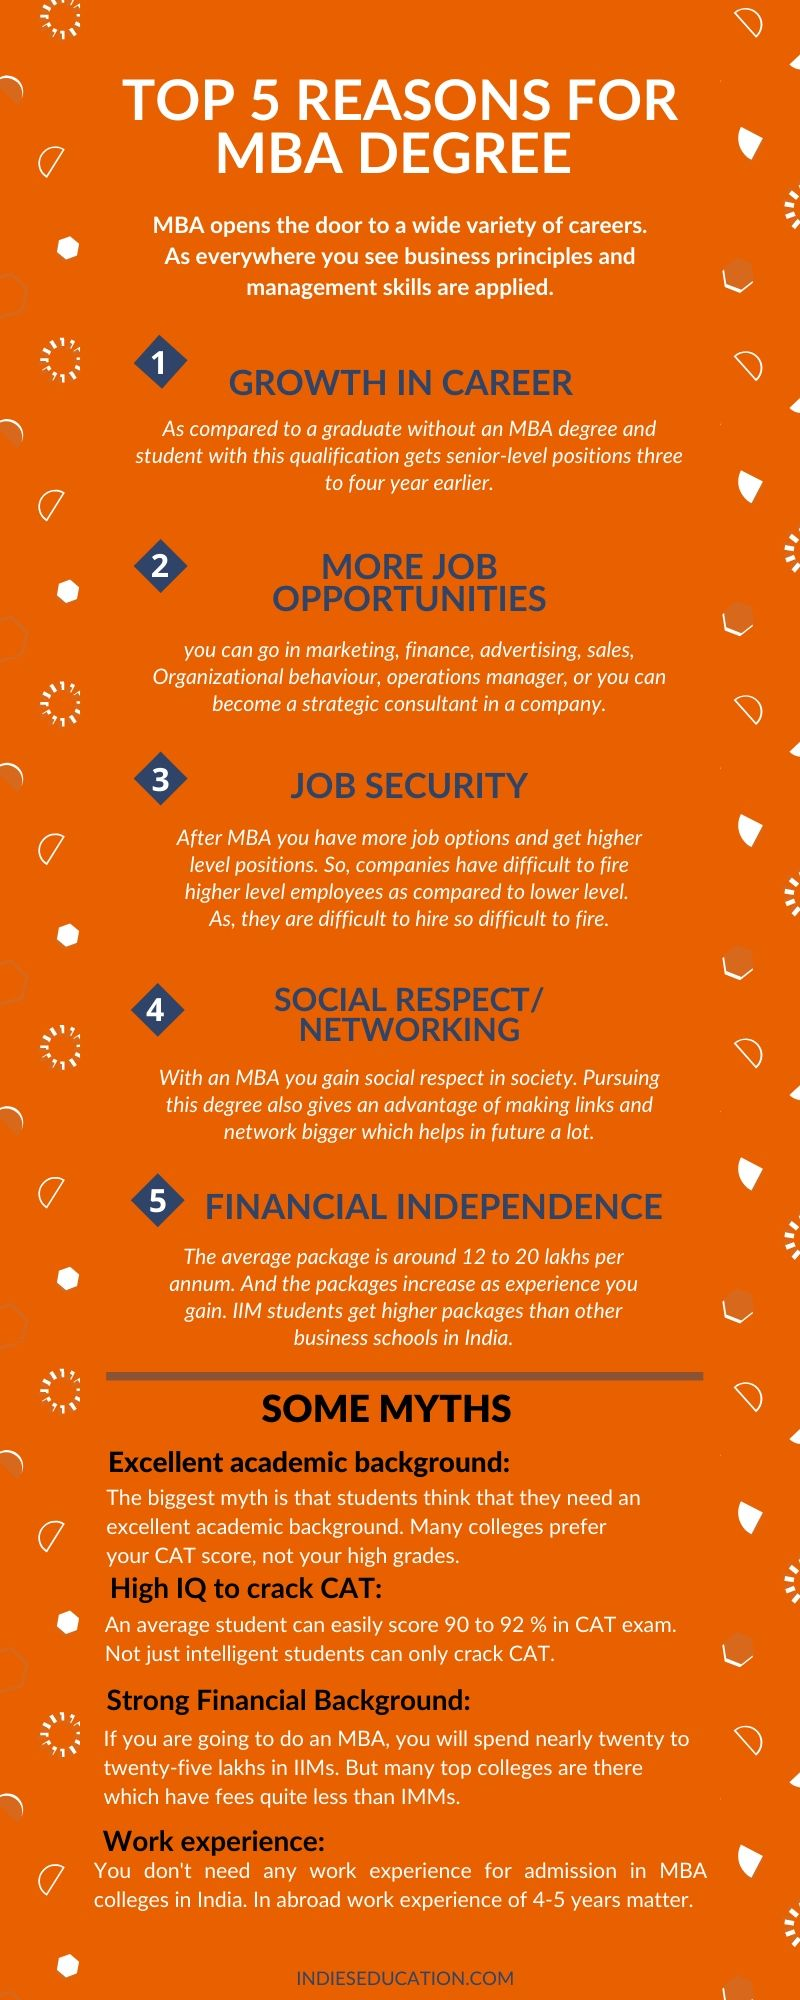 reasons-to-do-mba-and-some-myths-about-it.